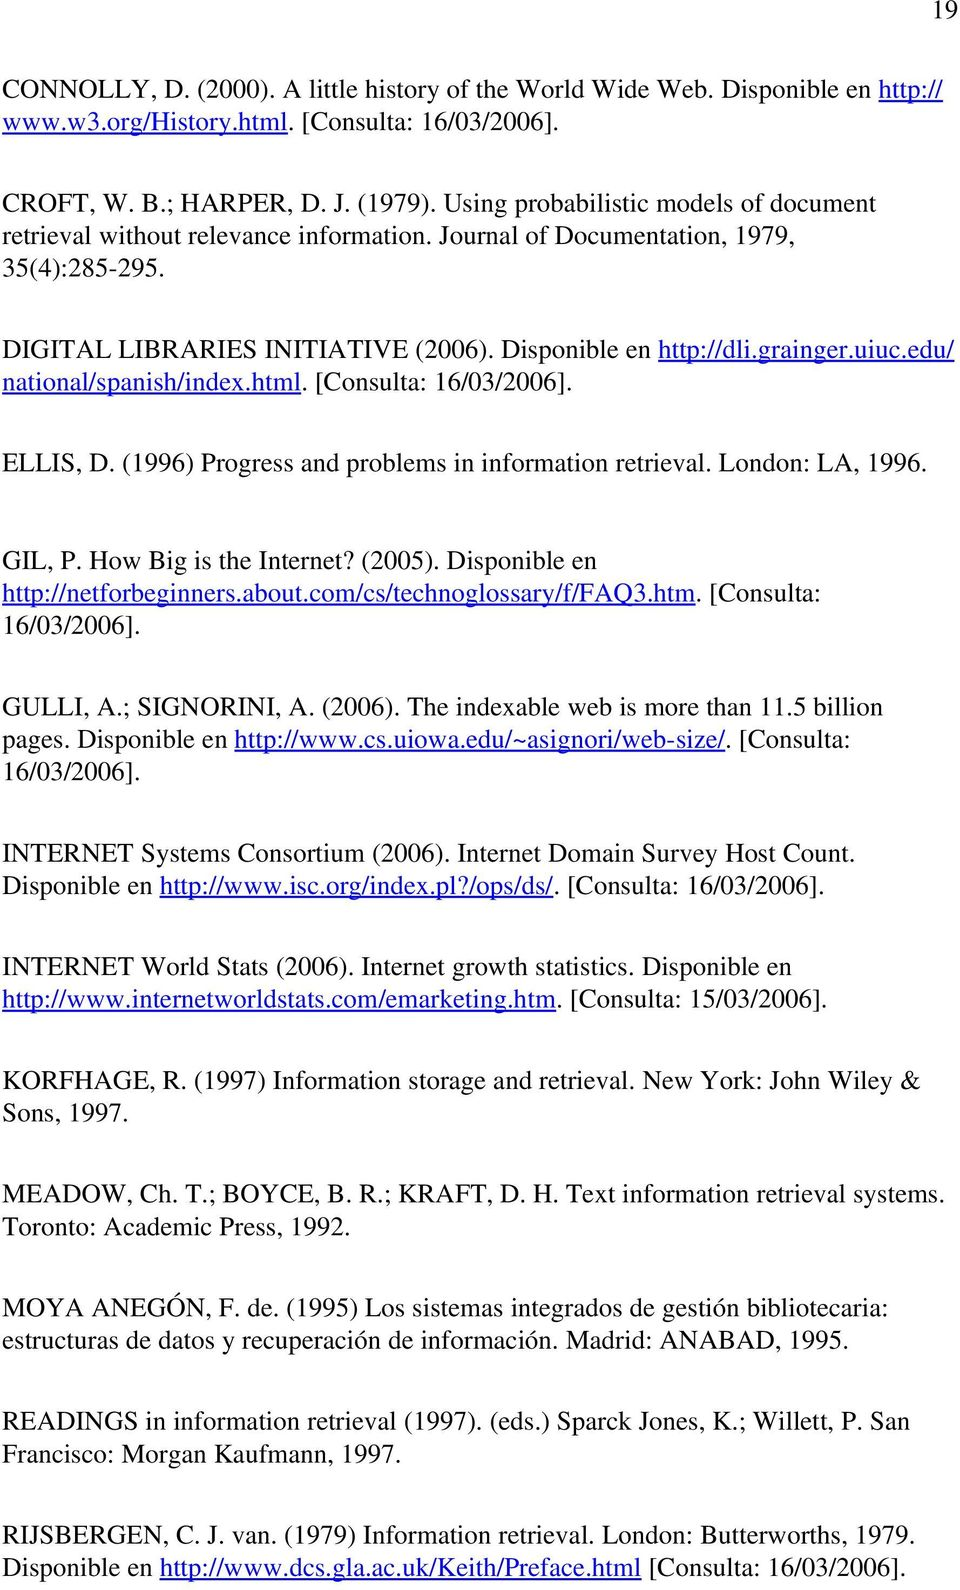 uiuc.edu/ national/spanish/index.html. [Consulta: 16/03/2006]. ELLIS, D. (1996) Progress and problems in information retrieval. London: LA, 1996. GIL, P. How Big is the Internet? (2005).